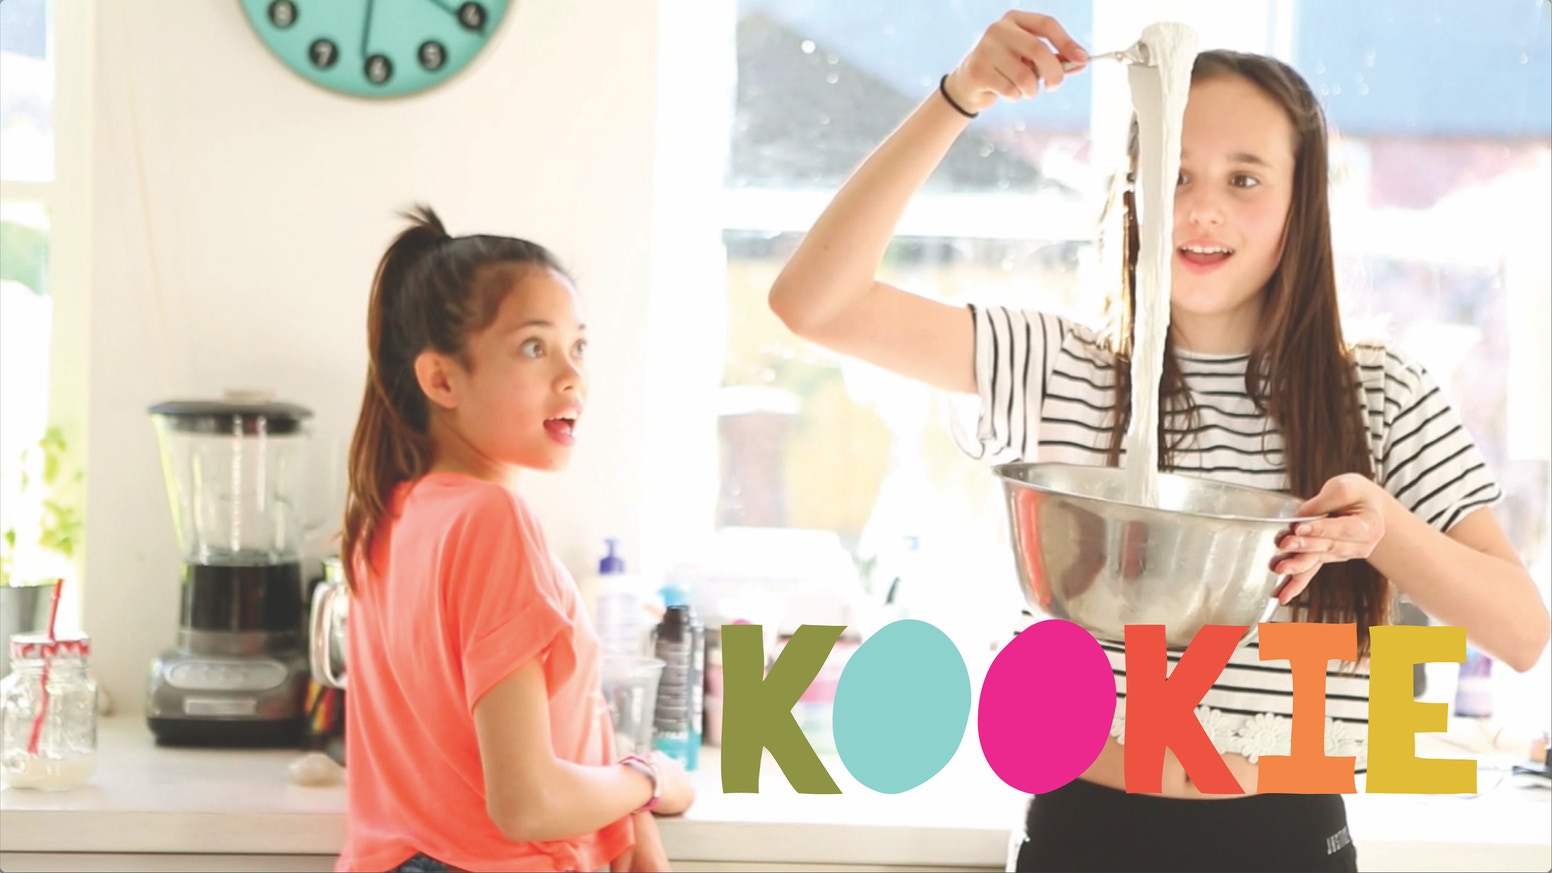 THIS KICKSTARTER HAS ENDED. If you would like to subscribe or buy a copy of KOOKIE — a fun, 'feminist' magazine with a mission to celebrate all a girl can be — head to our website www.kookiemagazine.com